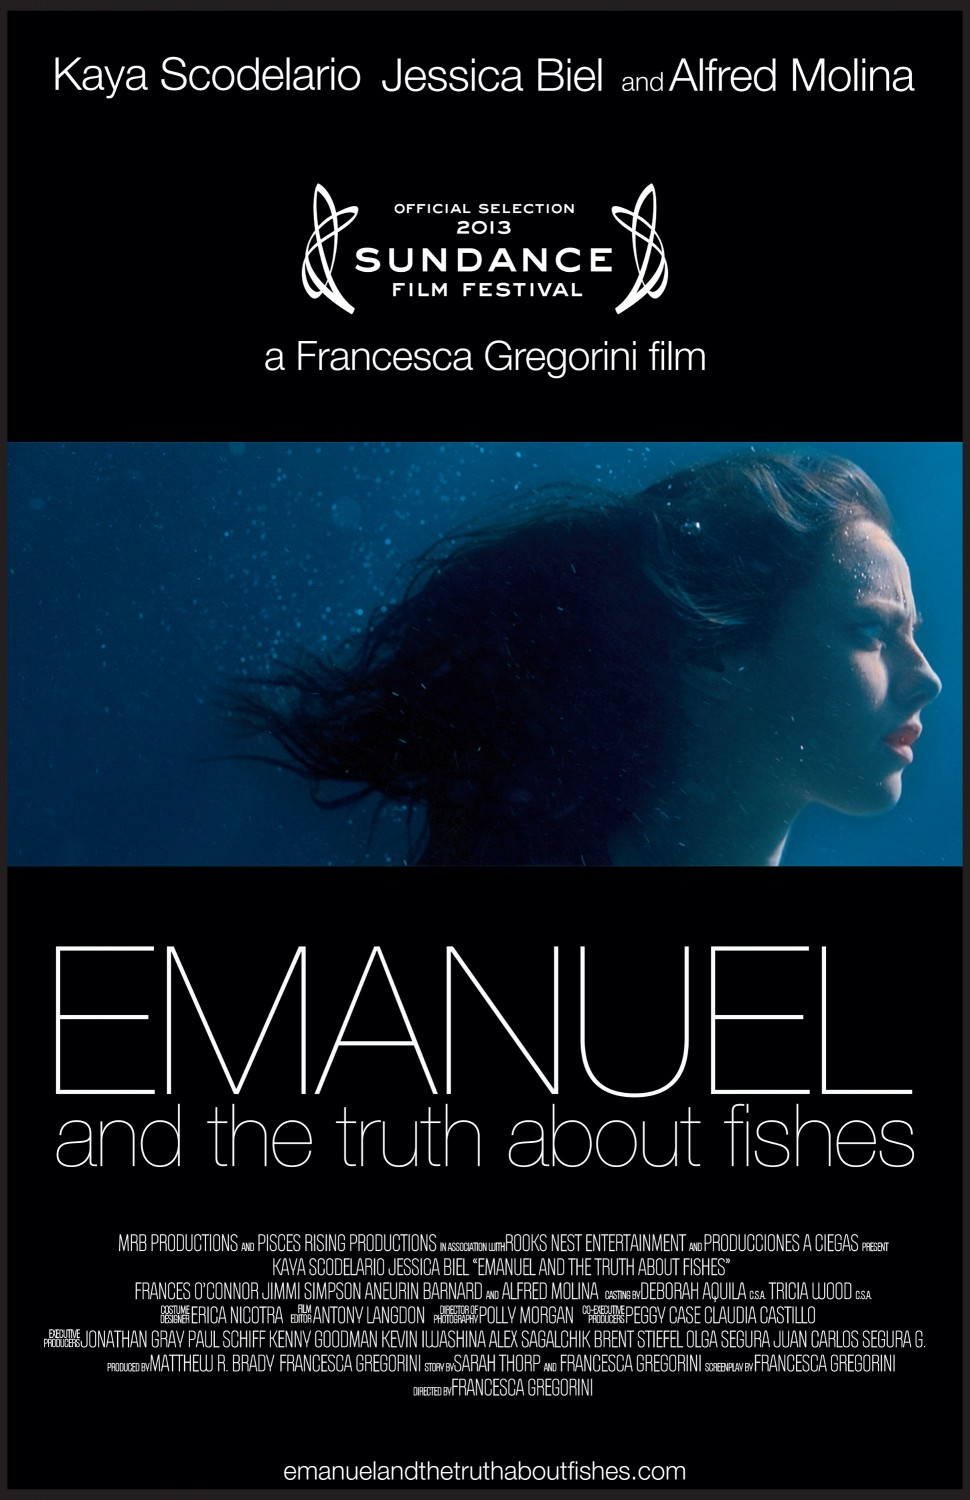 http://3.bp.blogspot.com/-5u15dYAV6jw/UXB4_zINQXI/AAAAAAAAavw/6snIpm_x2Ug/s1600/emanuel_and_the_truth_about_fishes_poster.jpg